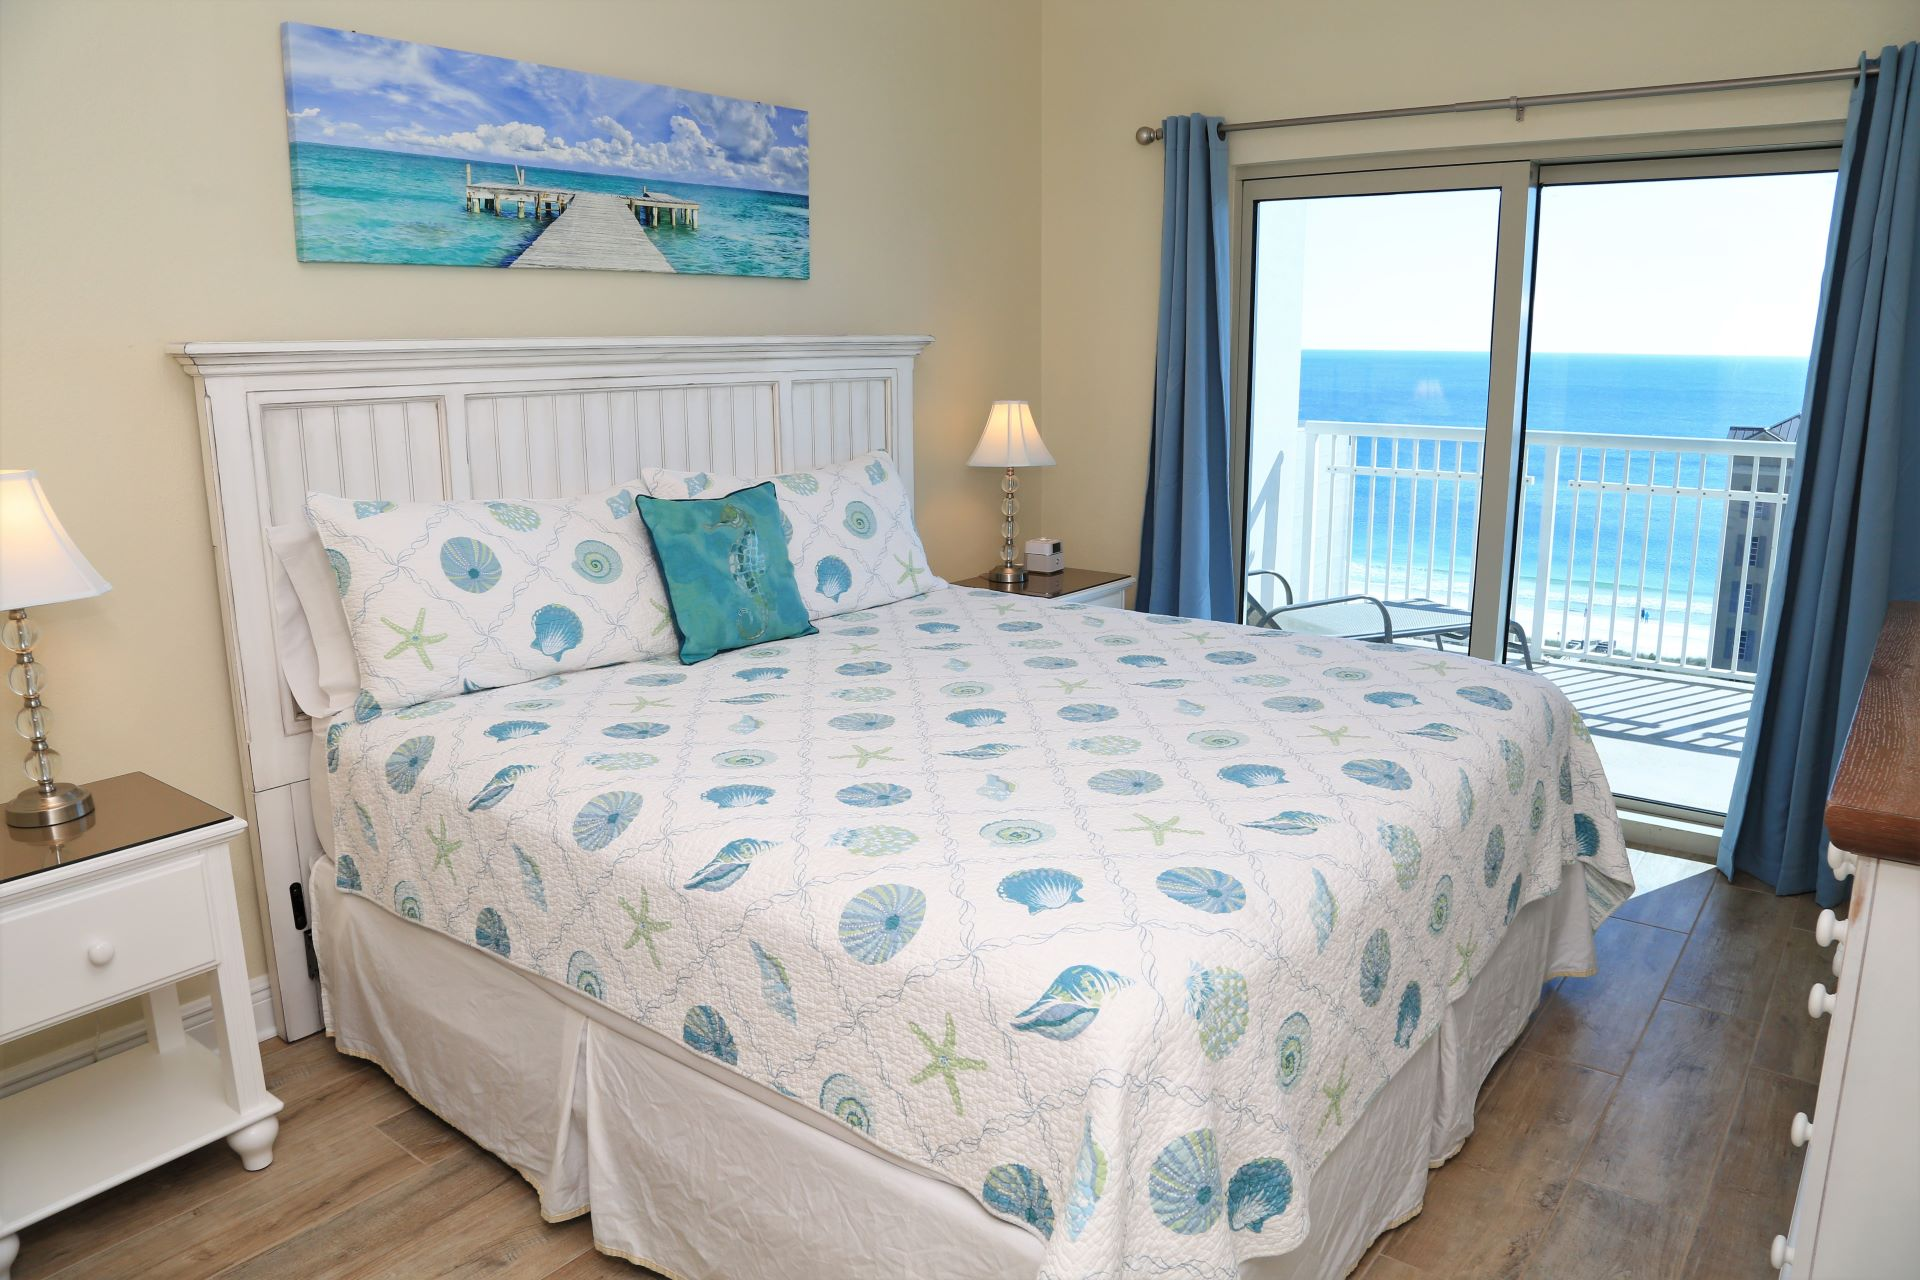 The master bedroom includes a comfy King-size bed and direct